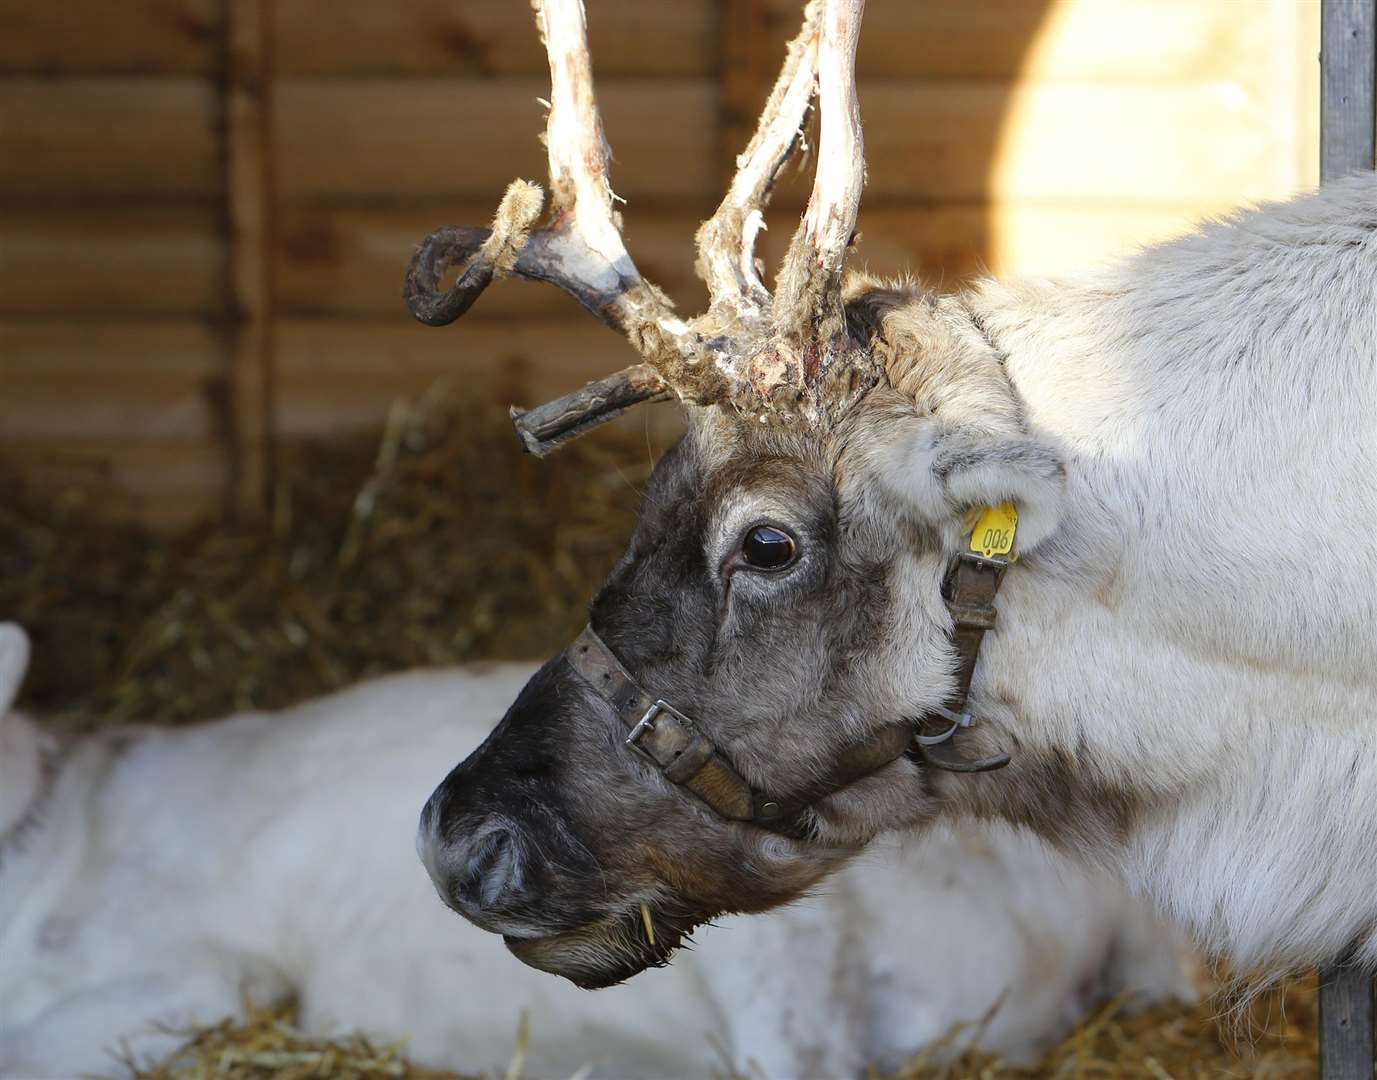 Reindeer have been used at Leeds Castle's Christmas Market in the past